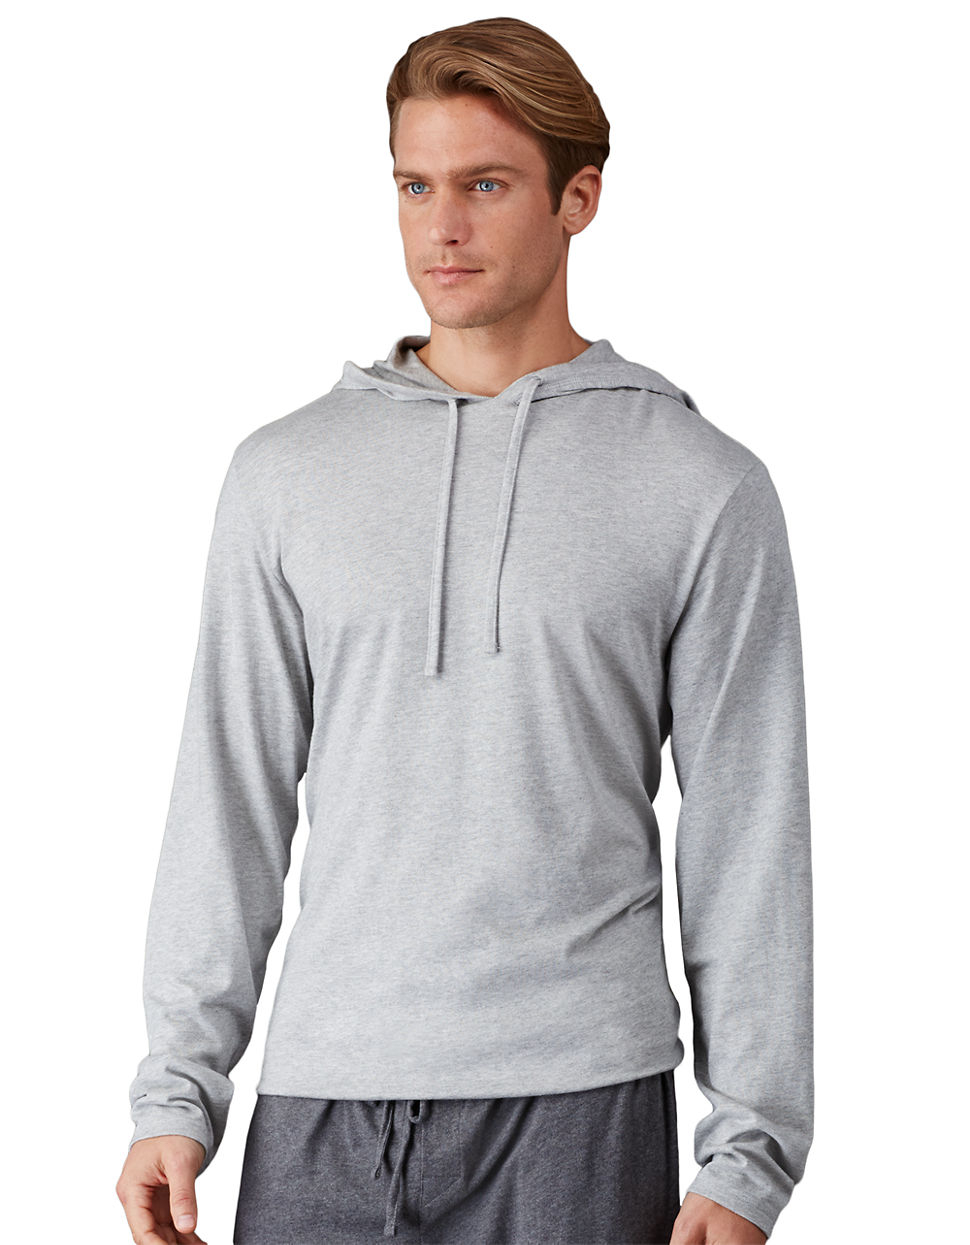 polo ralph lauren supreme comfort jersey hoodie in gray for men lyst. Black Bedroom Furniture Sets. Home Design Ideas